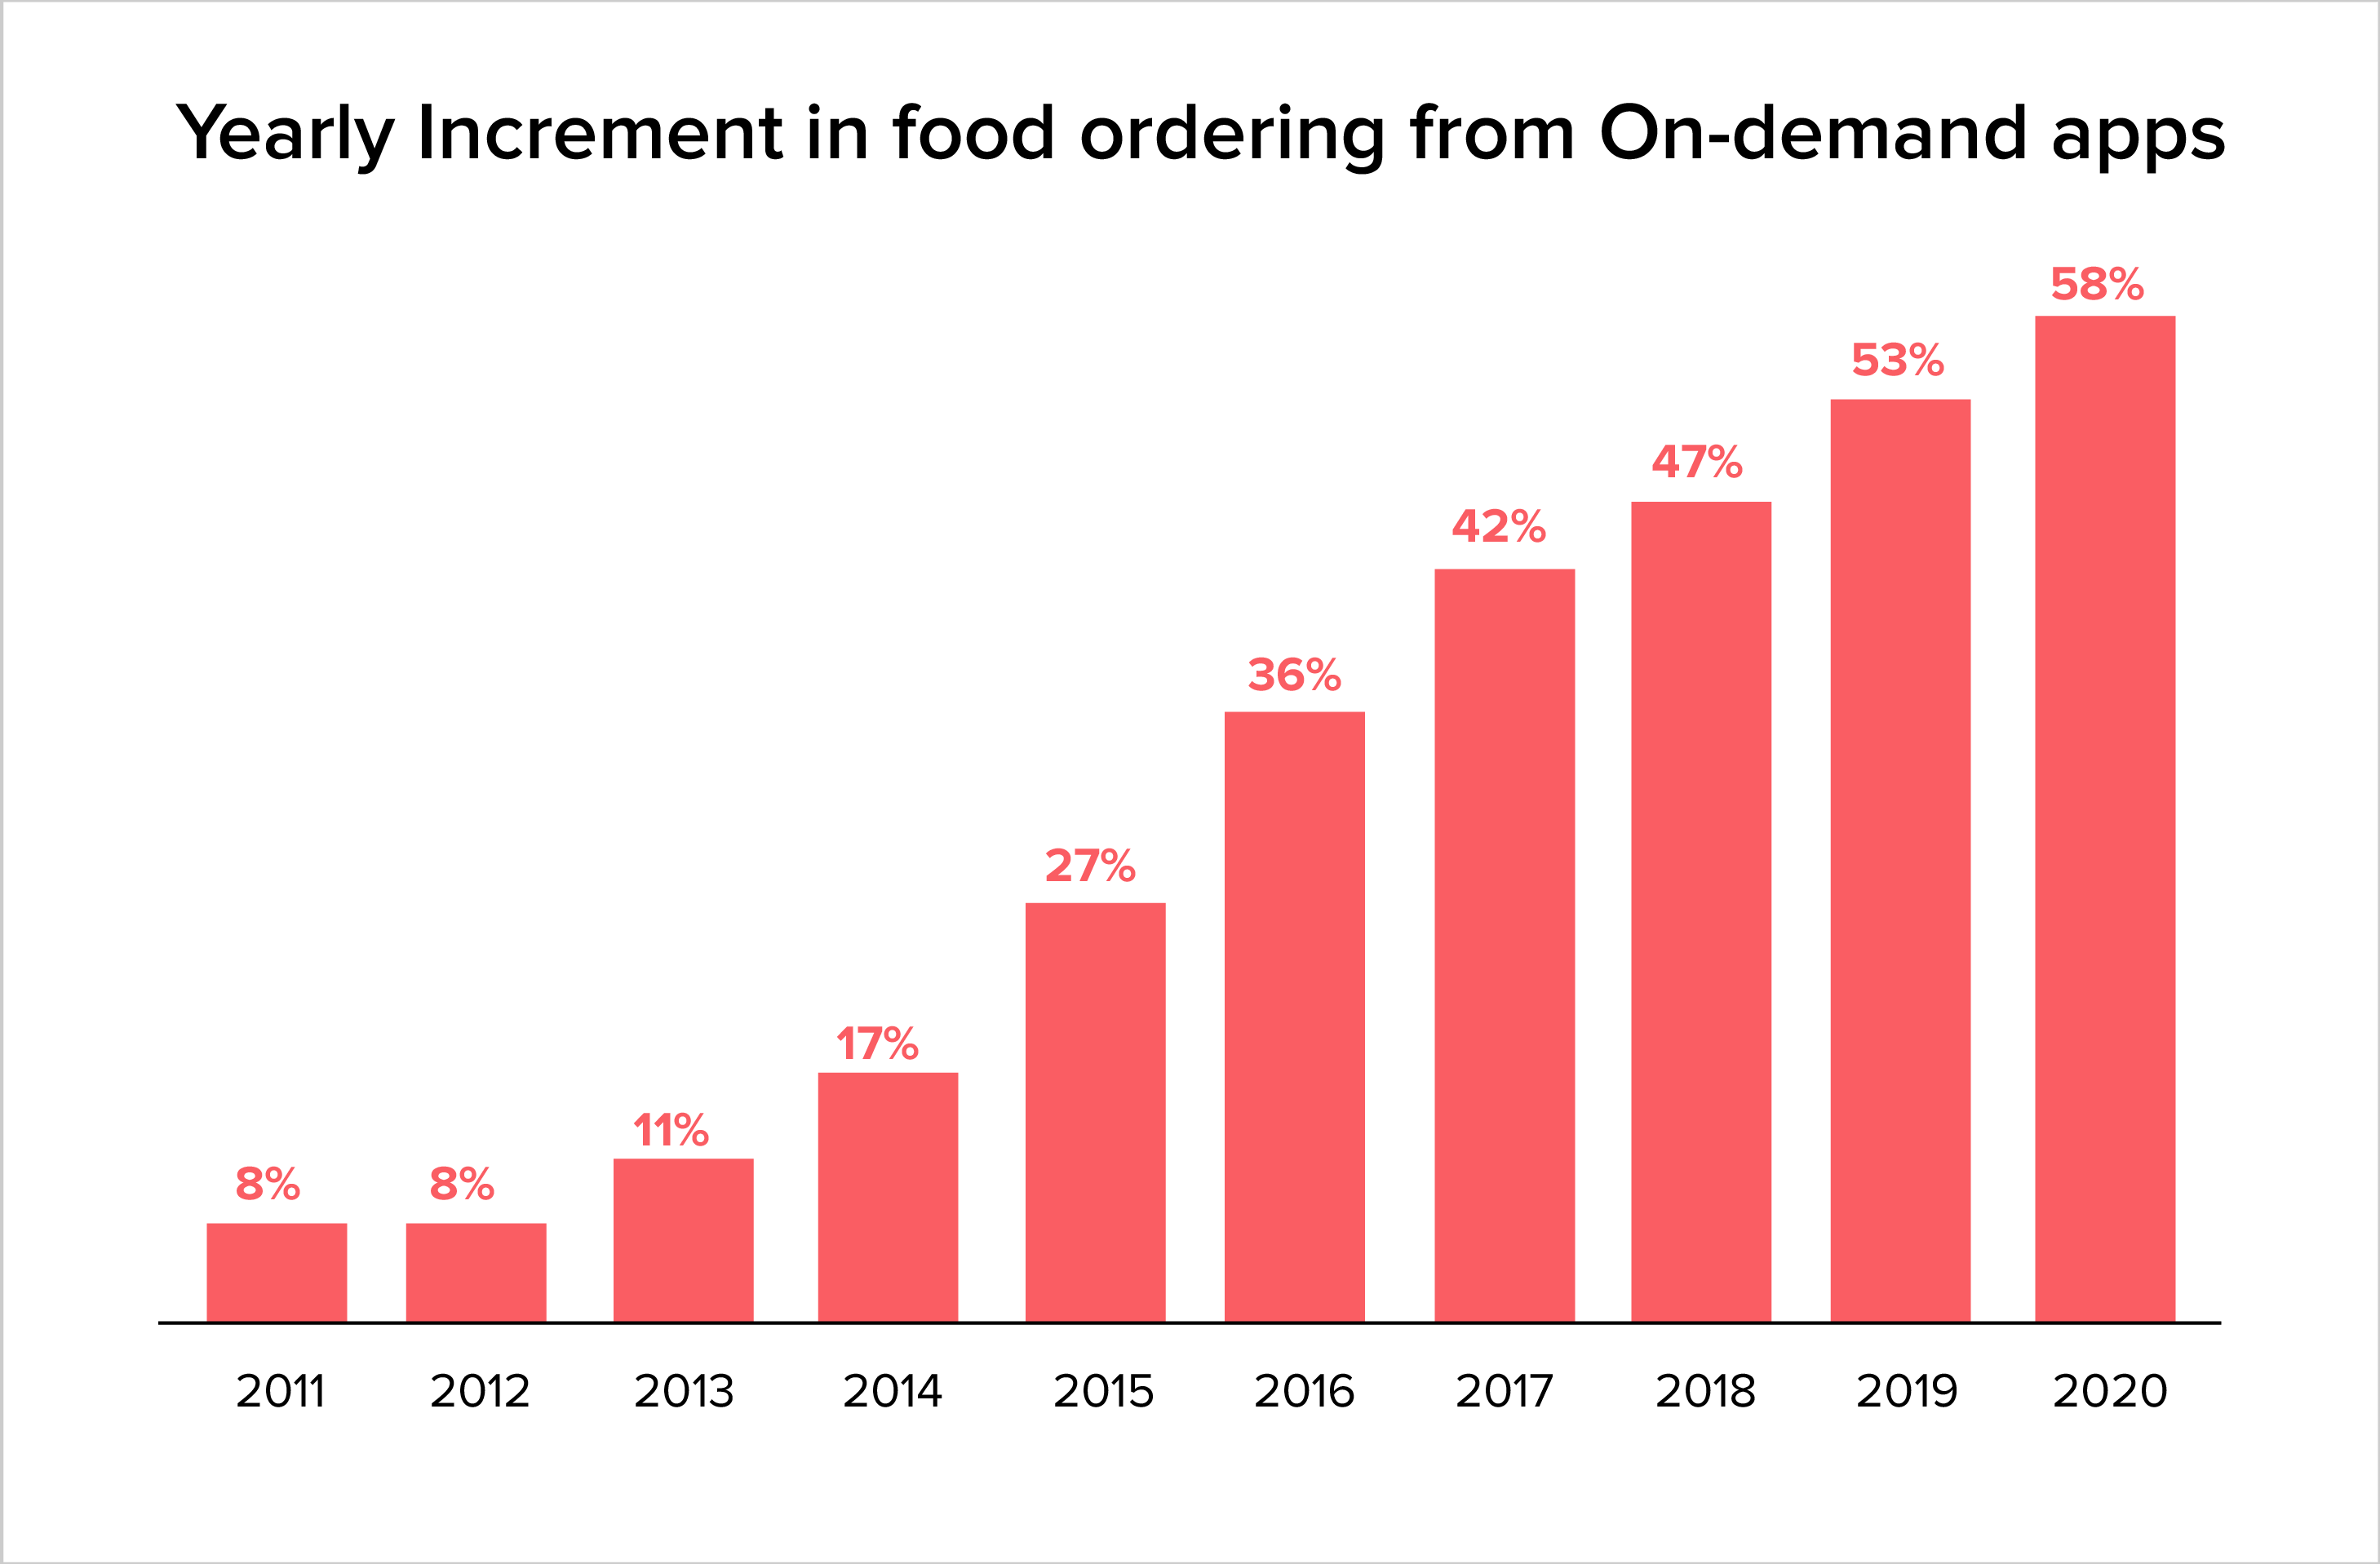 Yearly increment in Food ordering from on demand apps